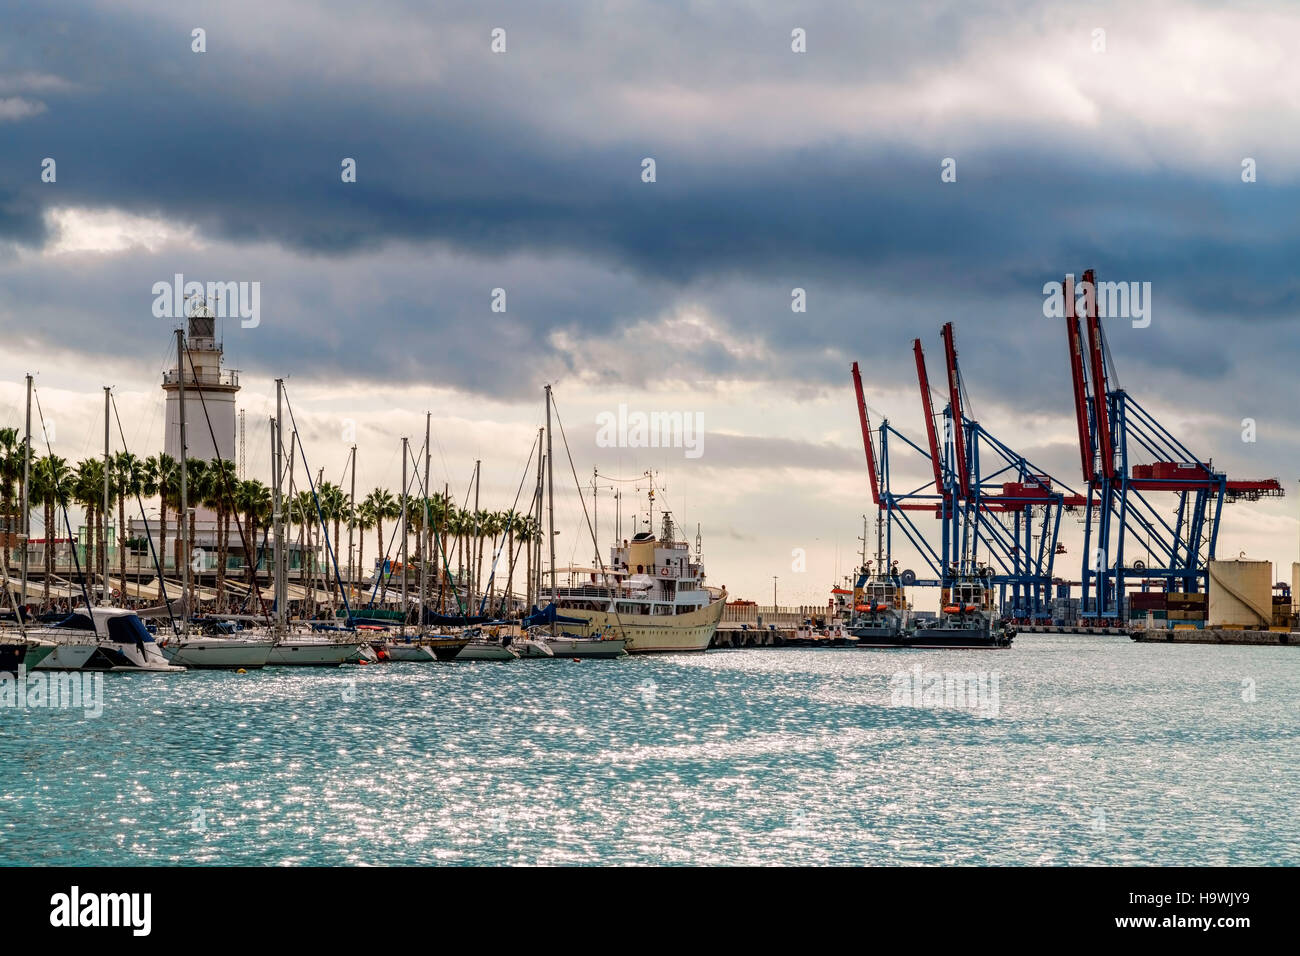 Lighthouse, Cargo dock, Commercial Port, Malaga, Andalucia, Spain, - Stock Image